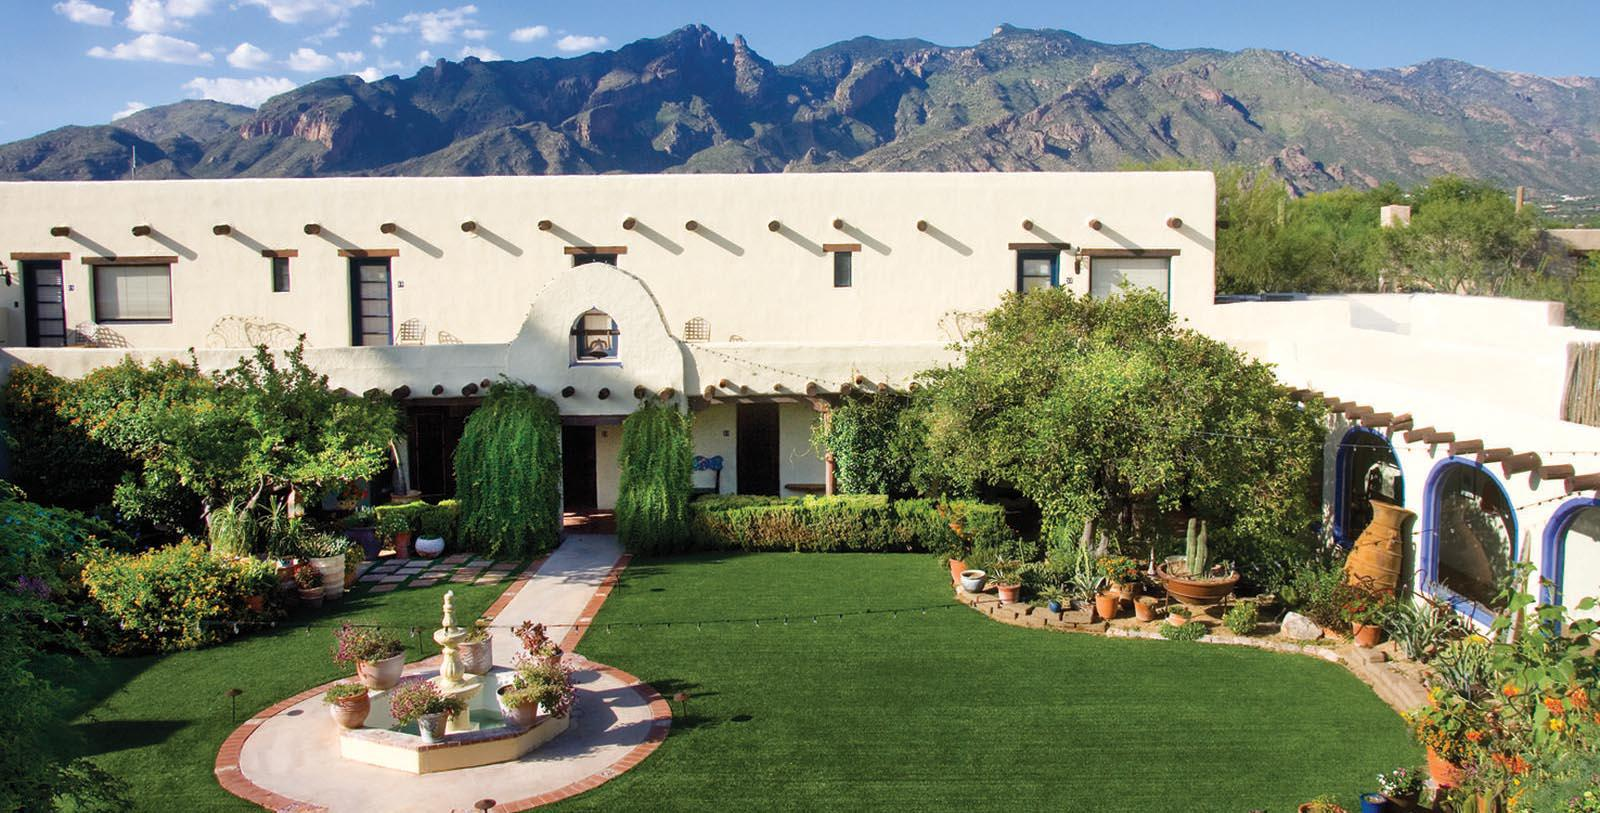 Image of hotel exterior Hacienda Del Sol Guest Ranch Resort, 1929, Member of Historic Hotels of America, in Tuscan, Arizona, Special Offers, Discounted Rates, Families, Romantic Escape, Honeymoons, Anniversaries, Reunions